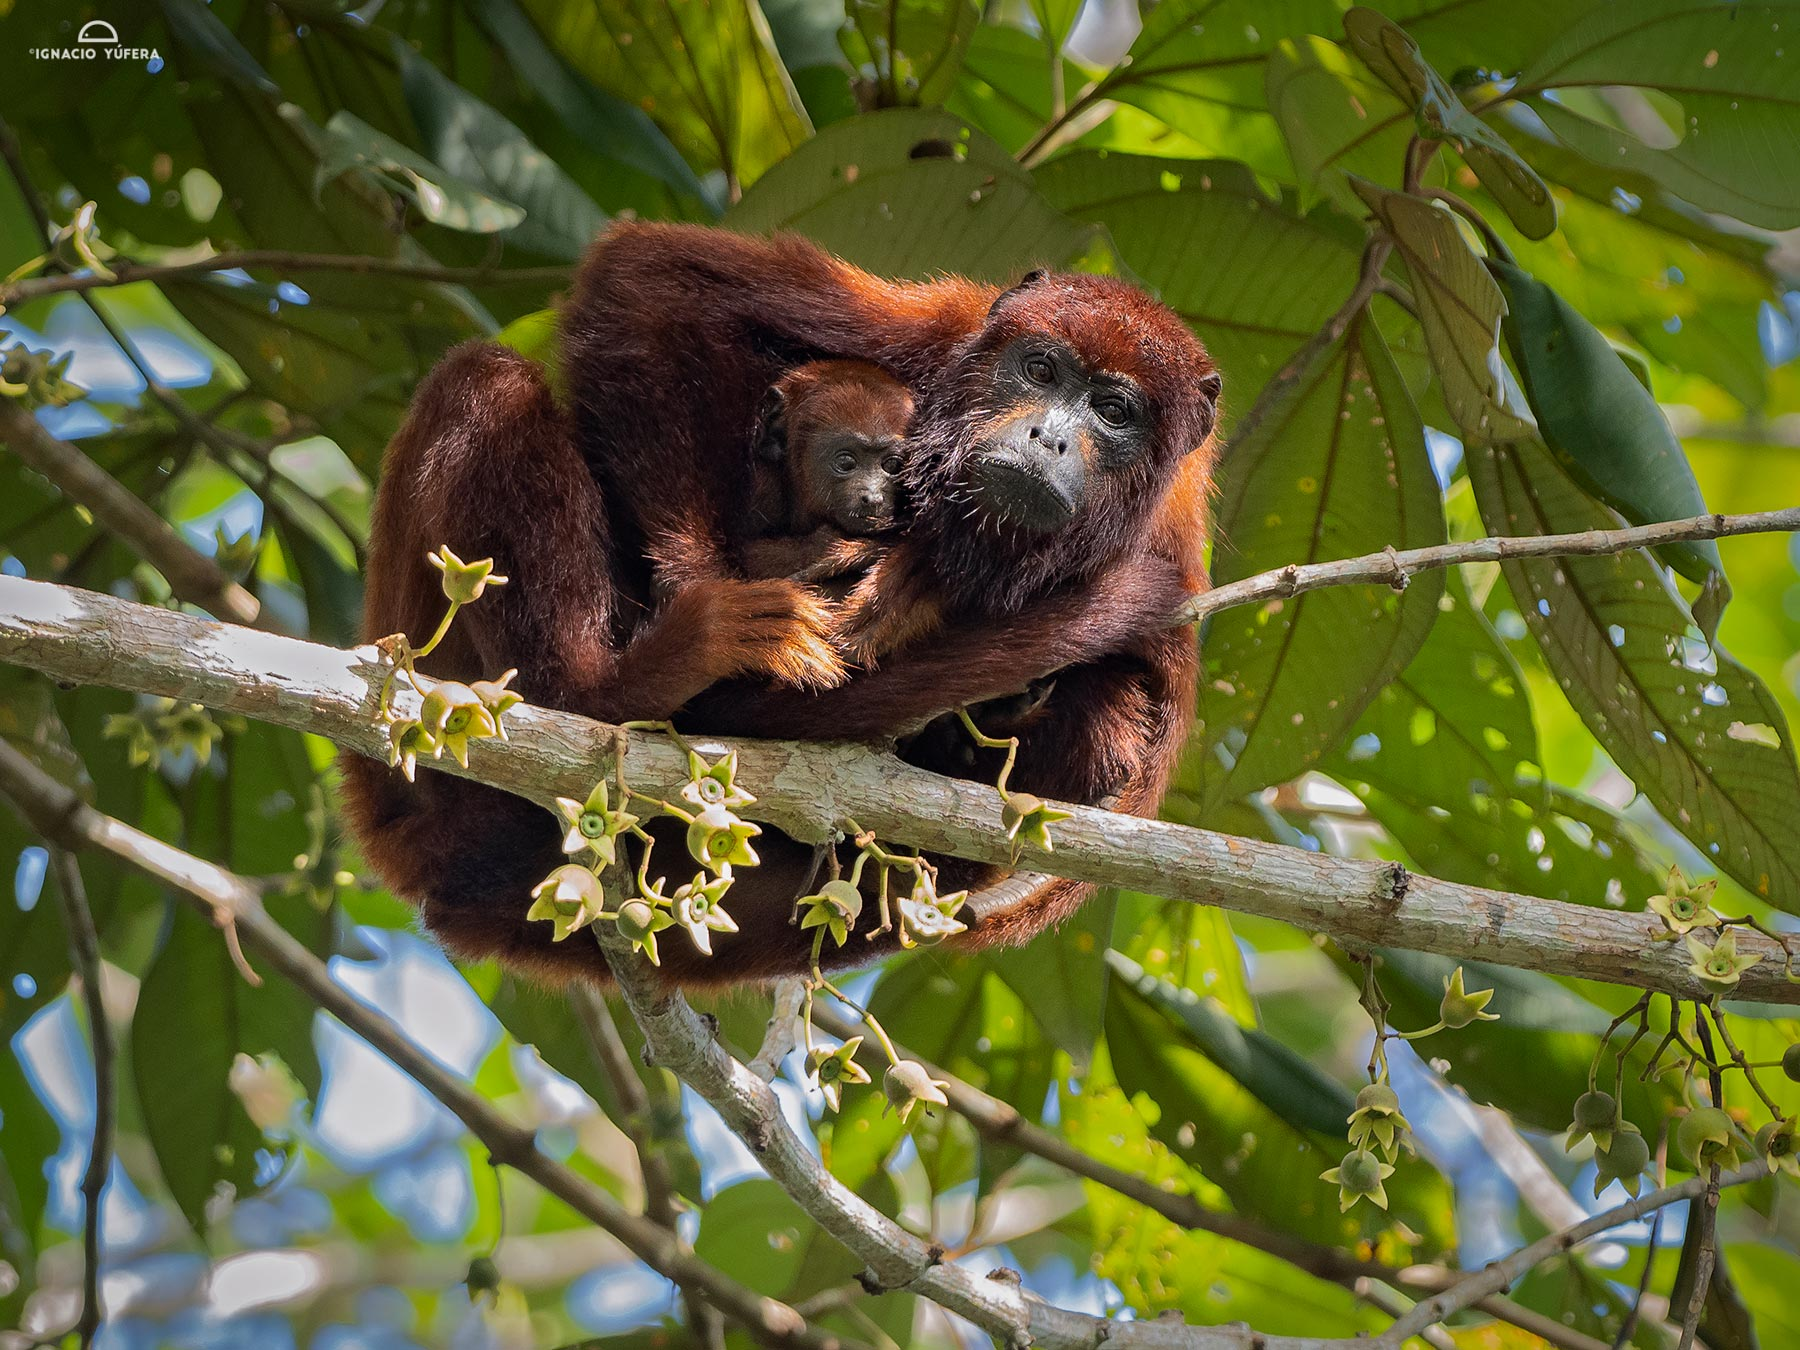 Venezuelan Red Howler Monkey (Alouatta seniculus), male with infant, Madre de Dios, Peru